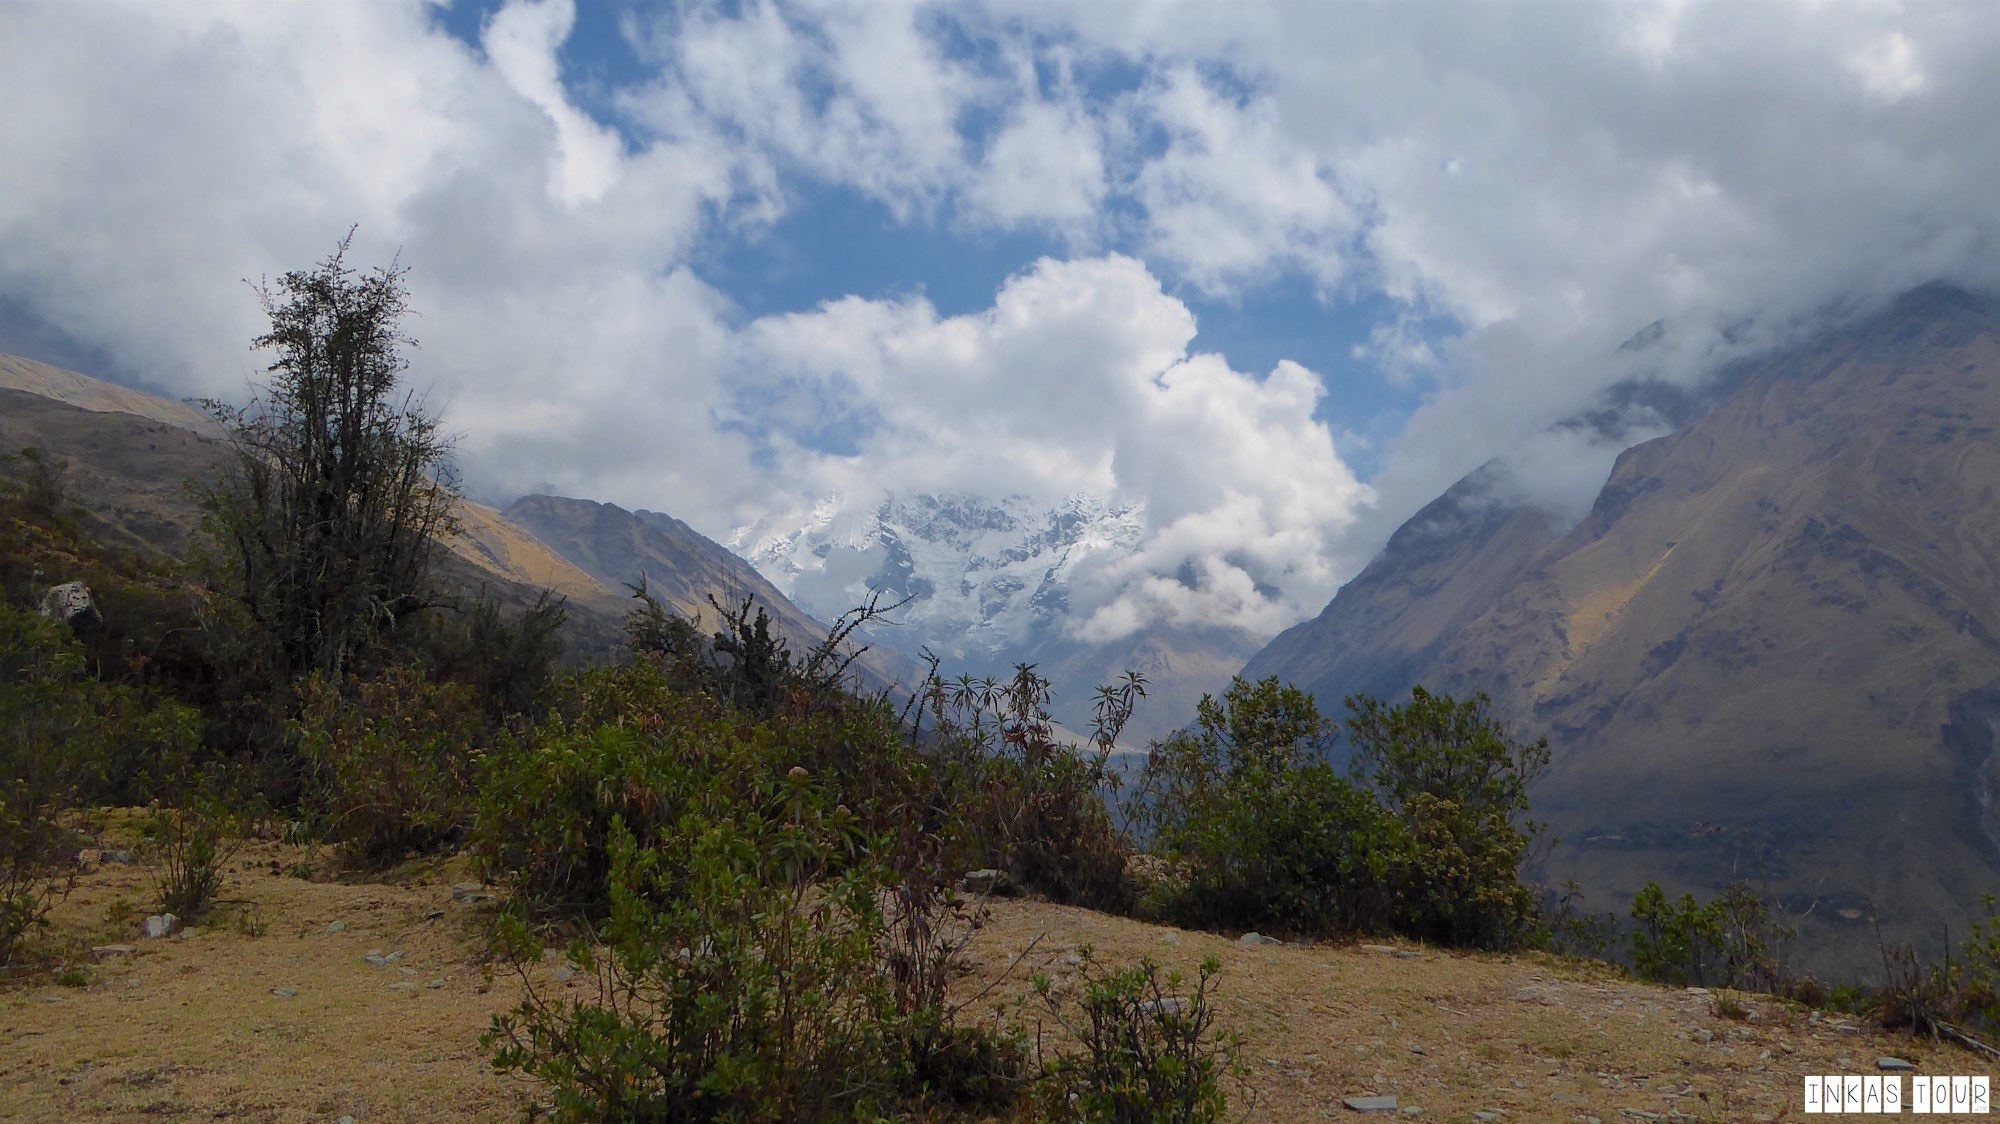 Early on, there is this amazing view of Nevado Salkantay, Salkantay Trek